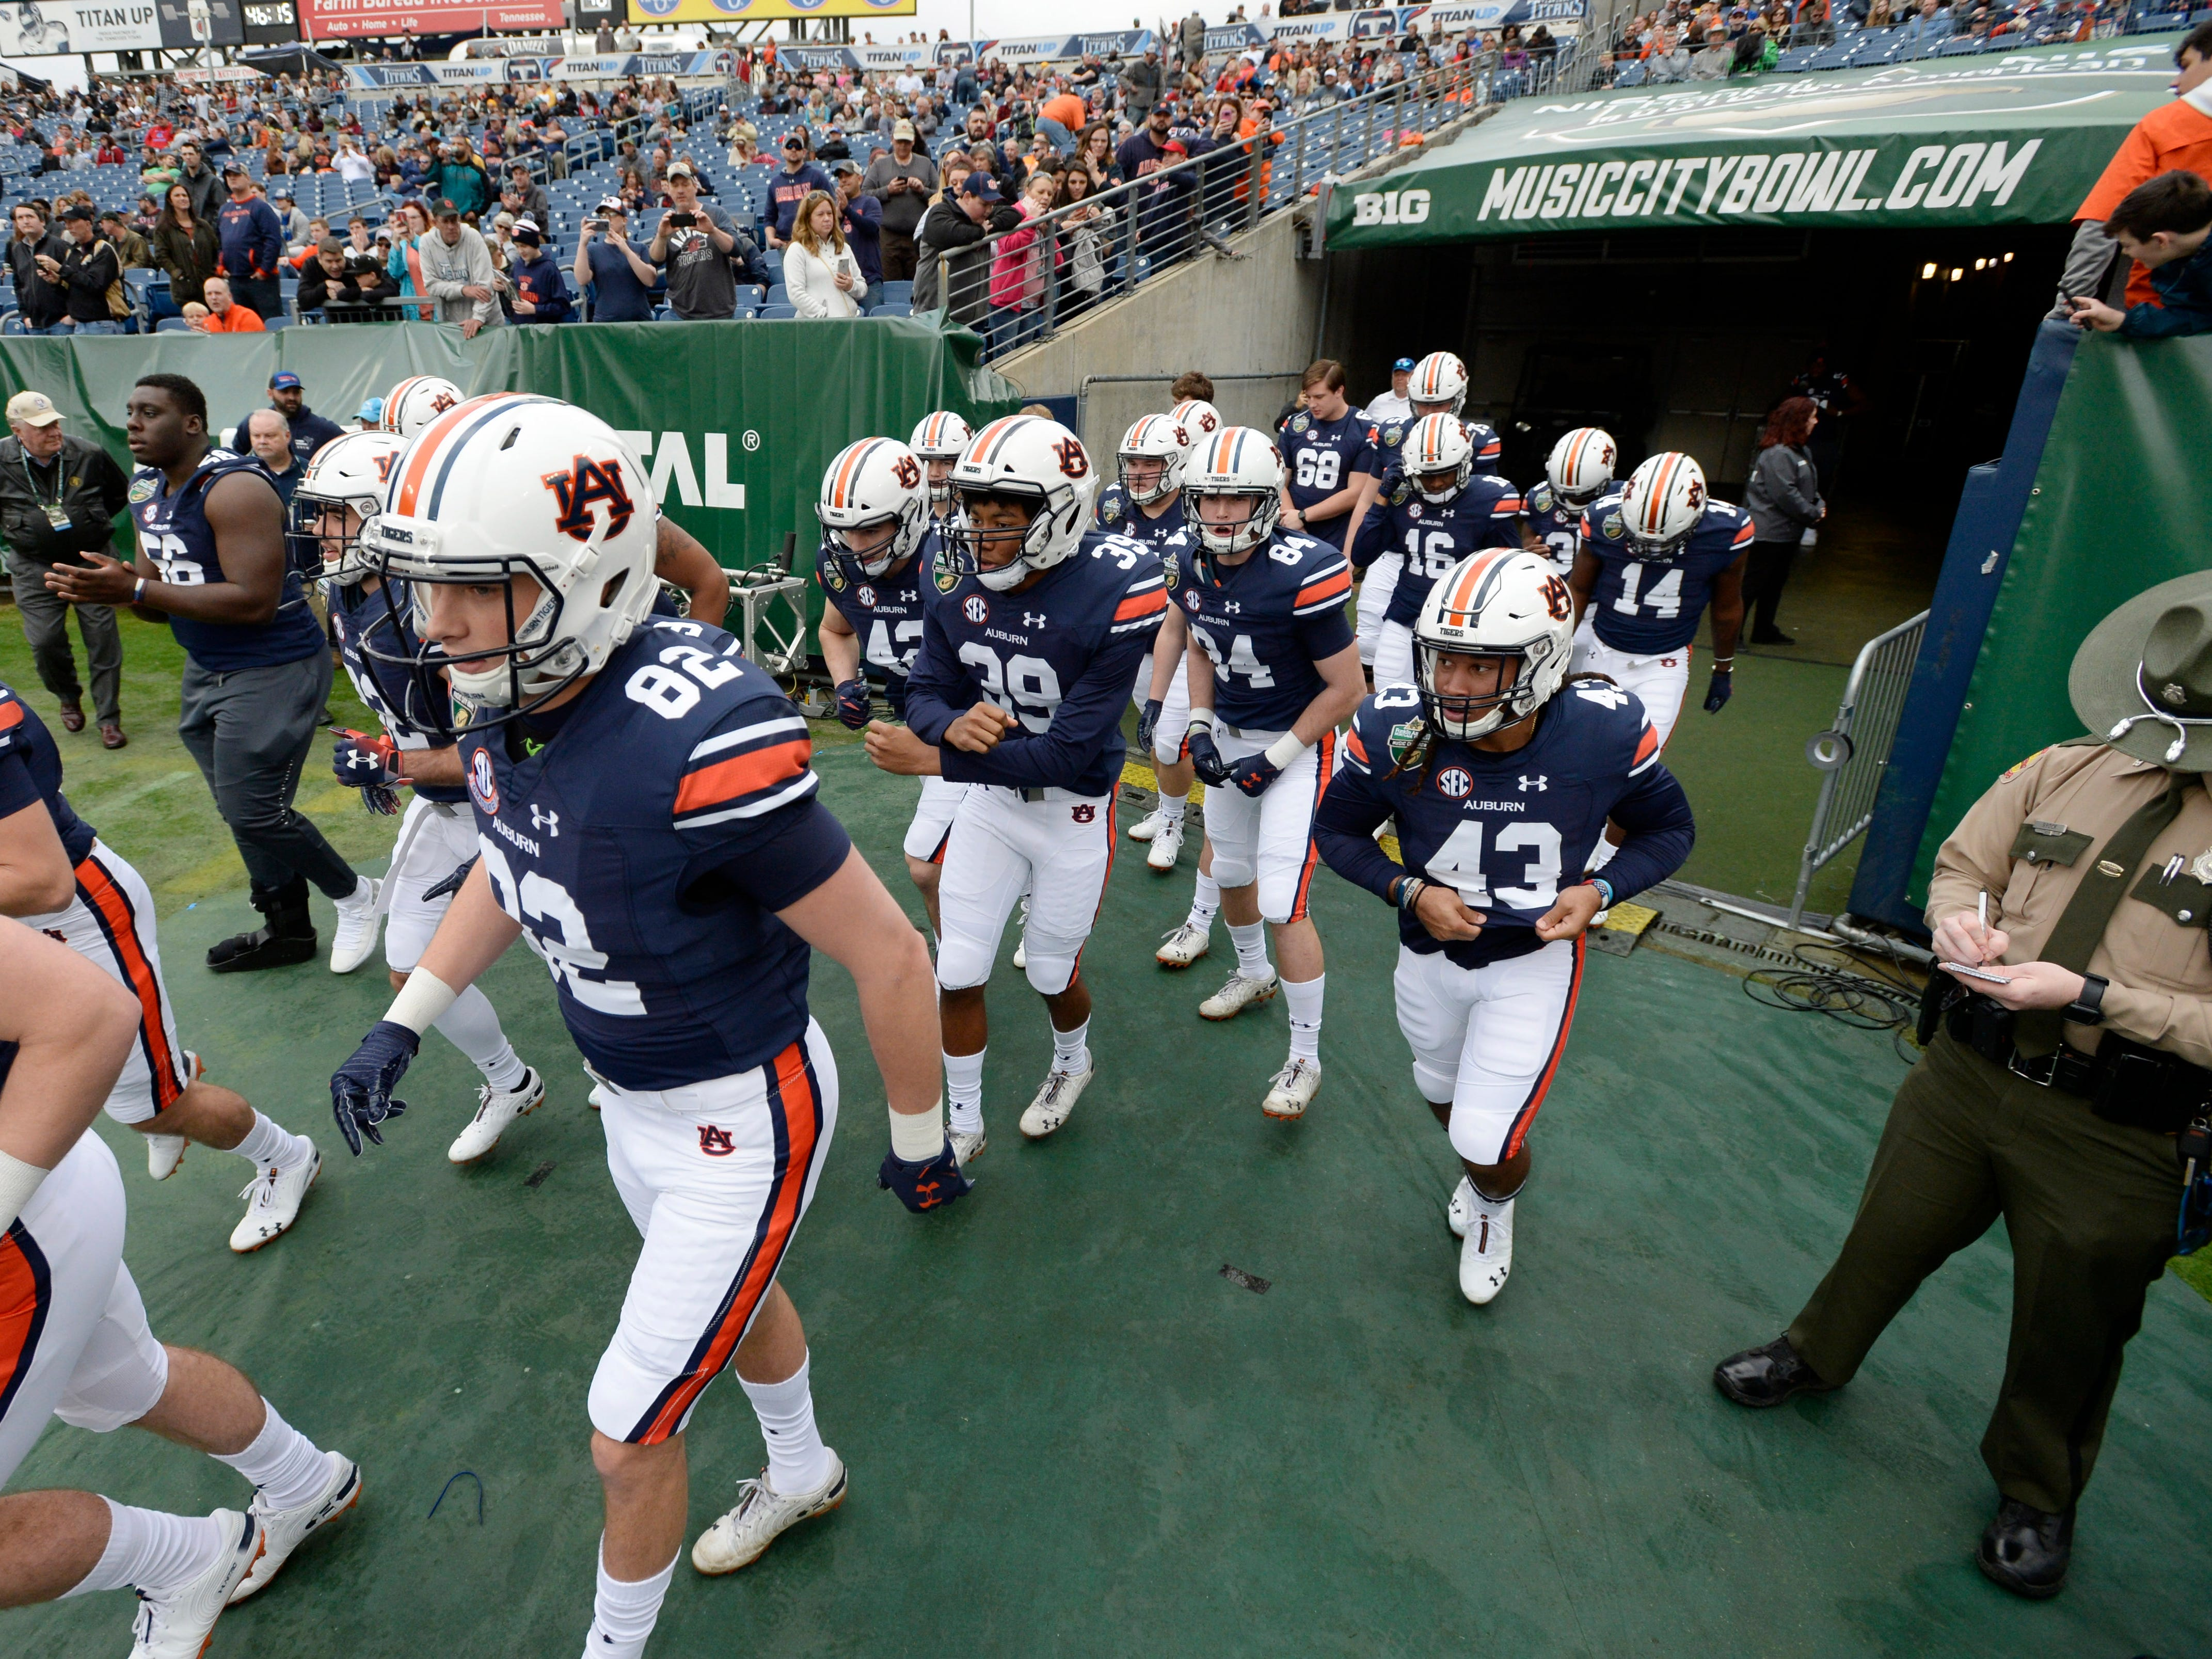 Auburn players take the field before the start of the Music City Bowl NCAA college football game Friday, Dec. 28, 2018, at Nissan Stadium in Nashville, Tenn.